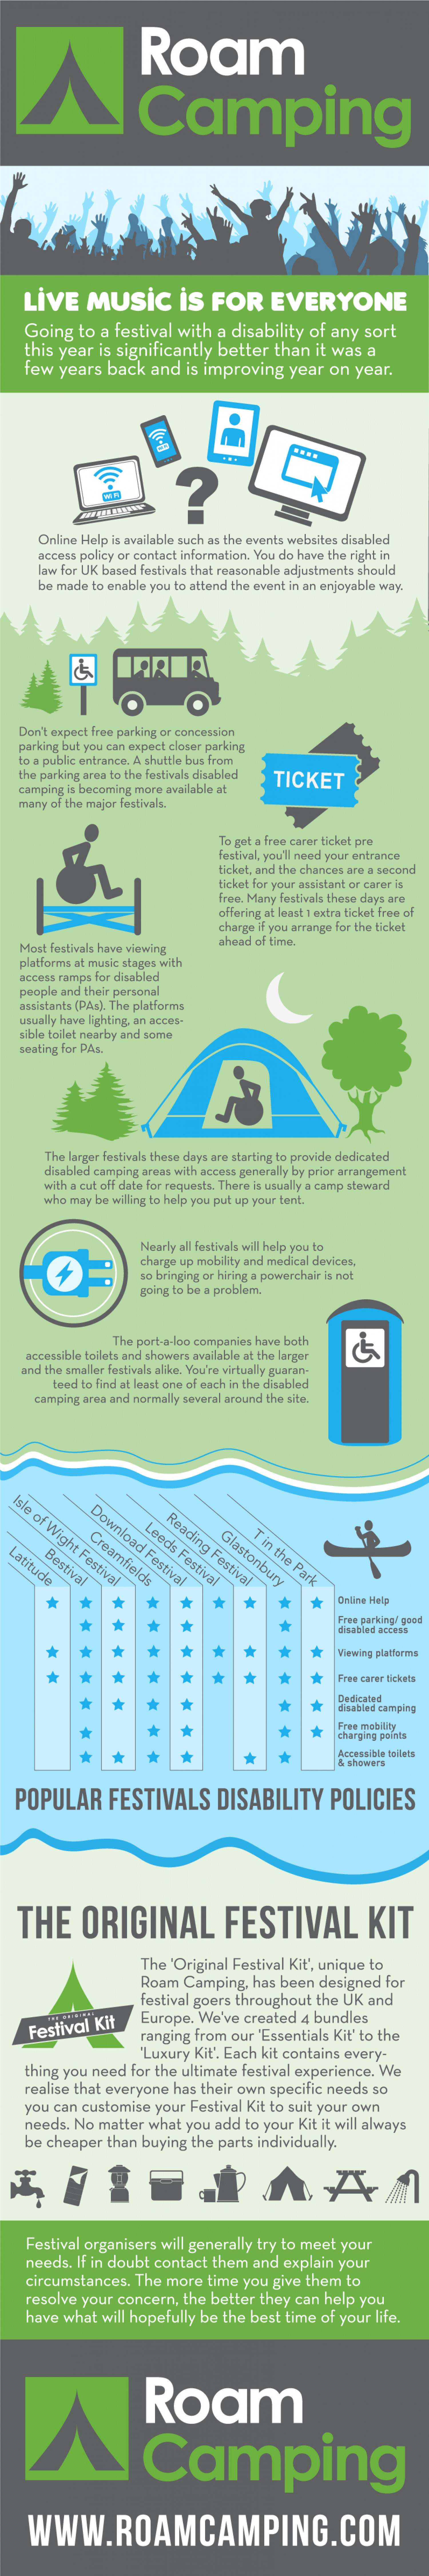 Disabled access at music festivals Infographic